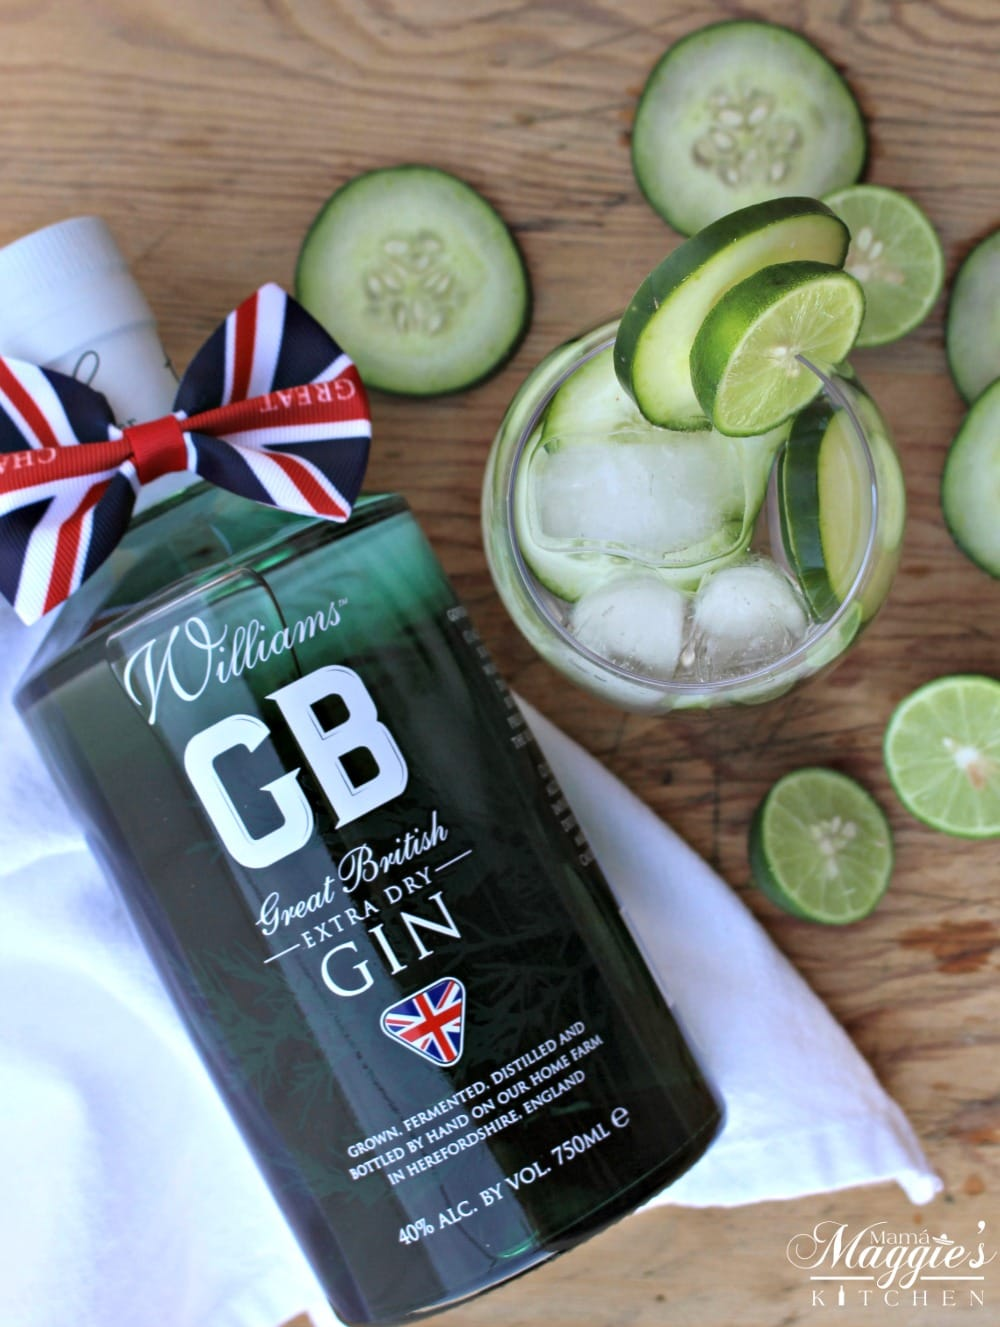 Williams Chase Great British Extra Dry Gin next to Cucumber Gin Cocktail